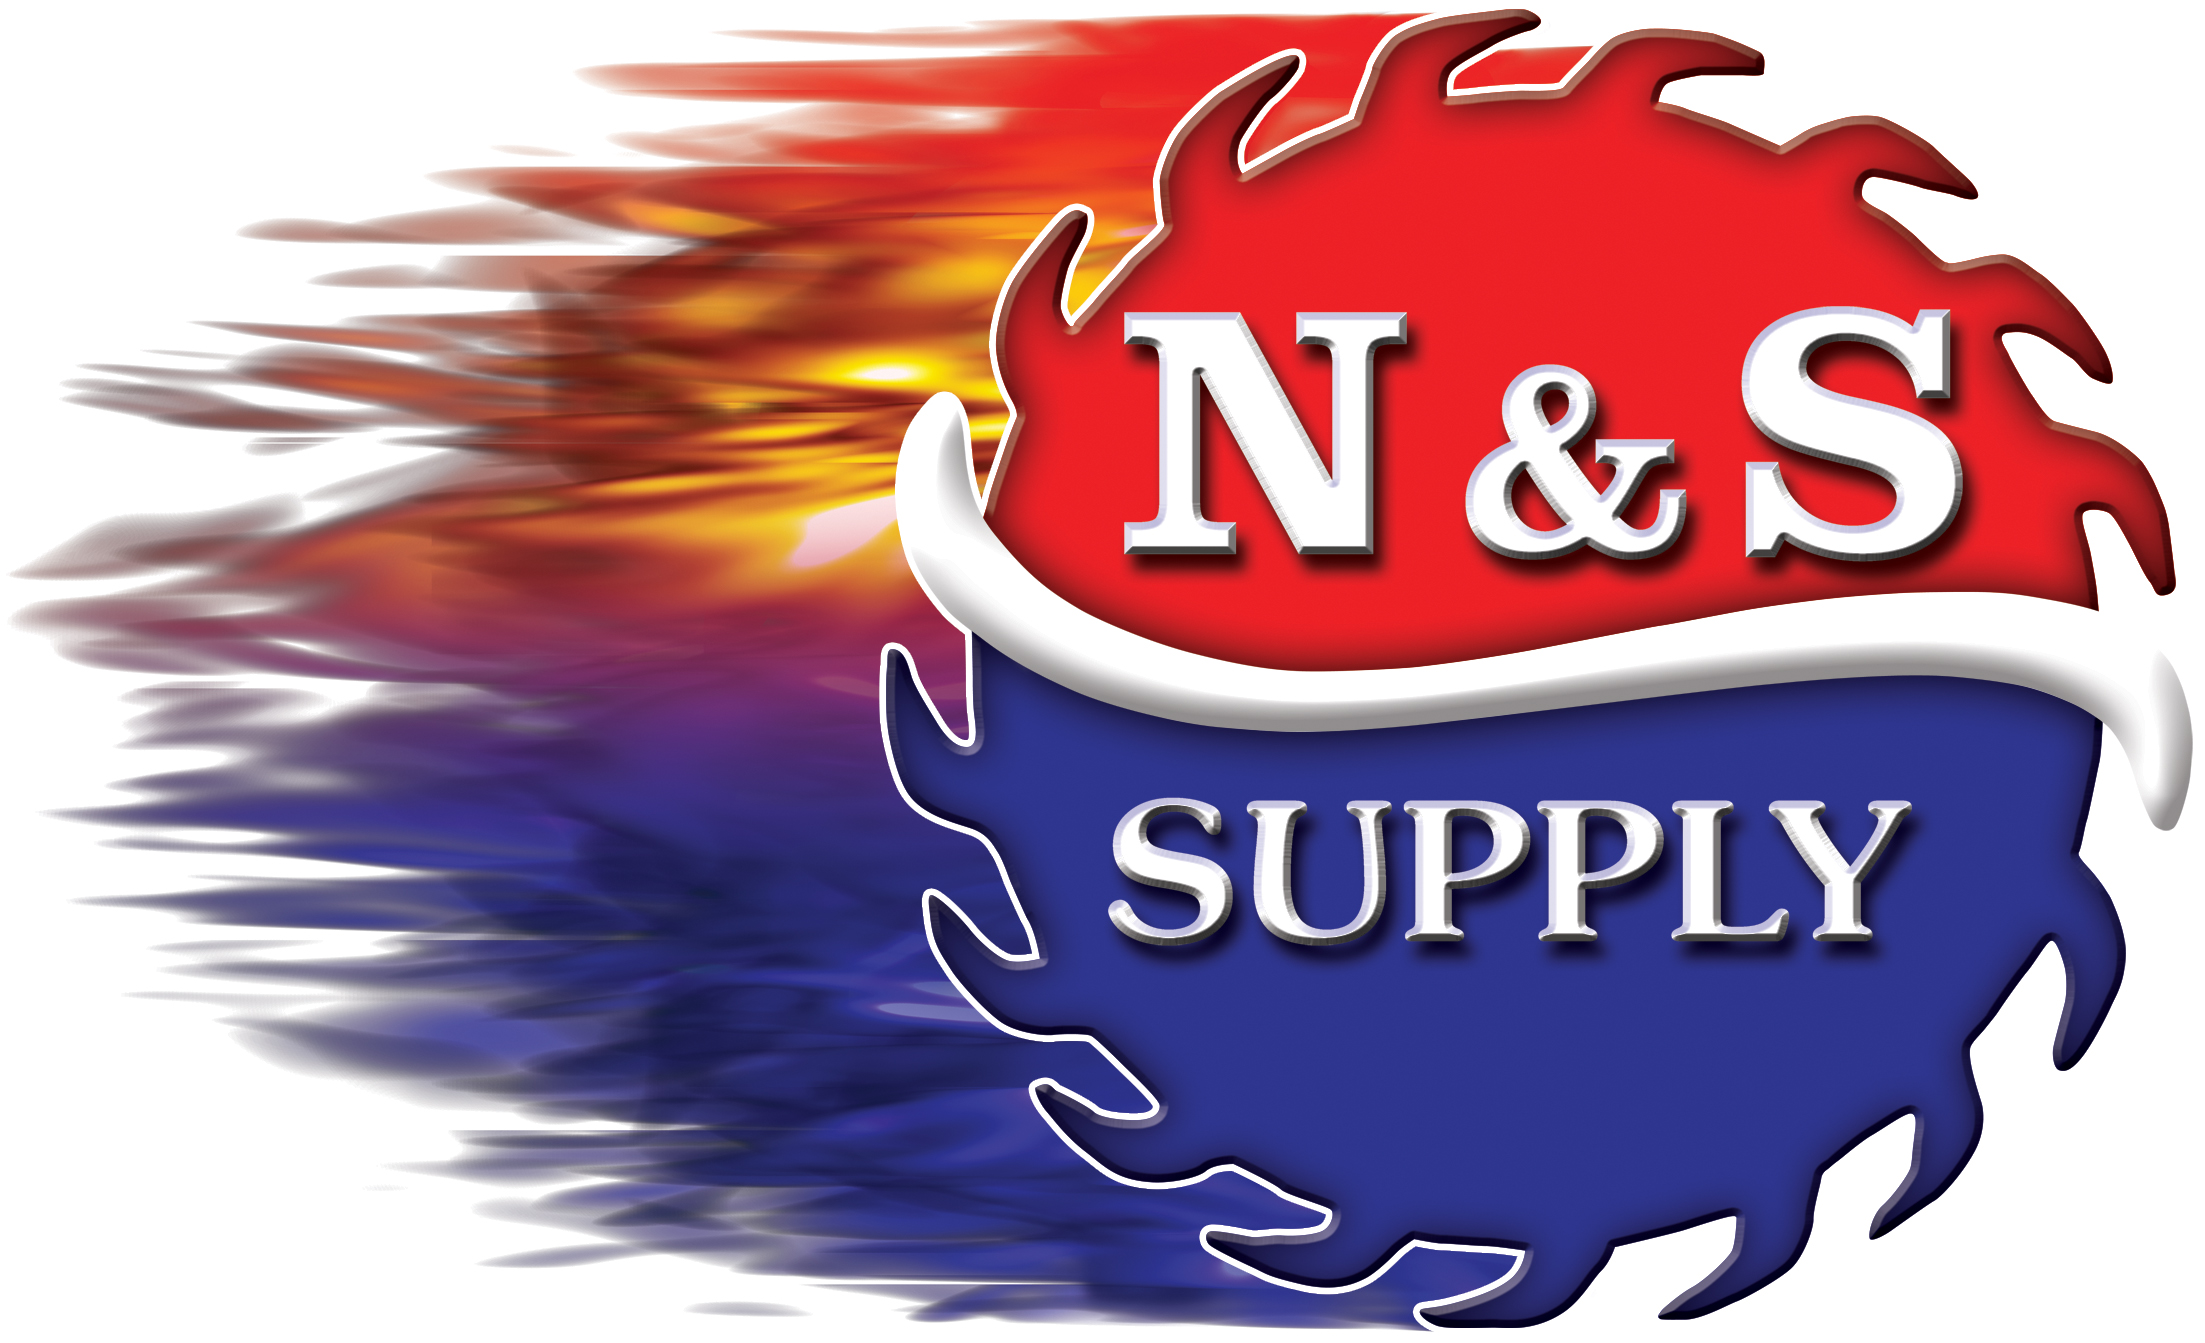 N&S Supply - Stop by our Showroom at 352 Main Street to see what's available to update your kitchen or bathroom. We're here to answer your remodeling questions. Check out our Floor Sample Clearance items!